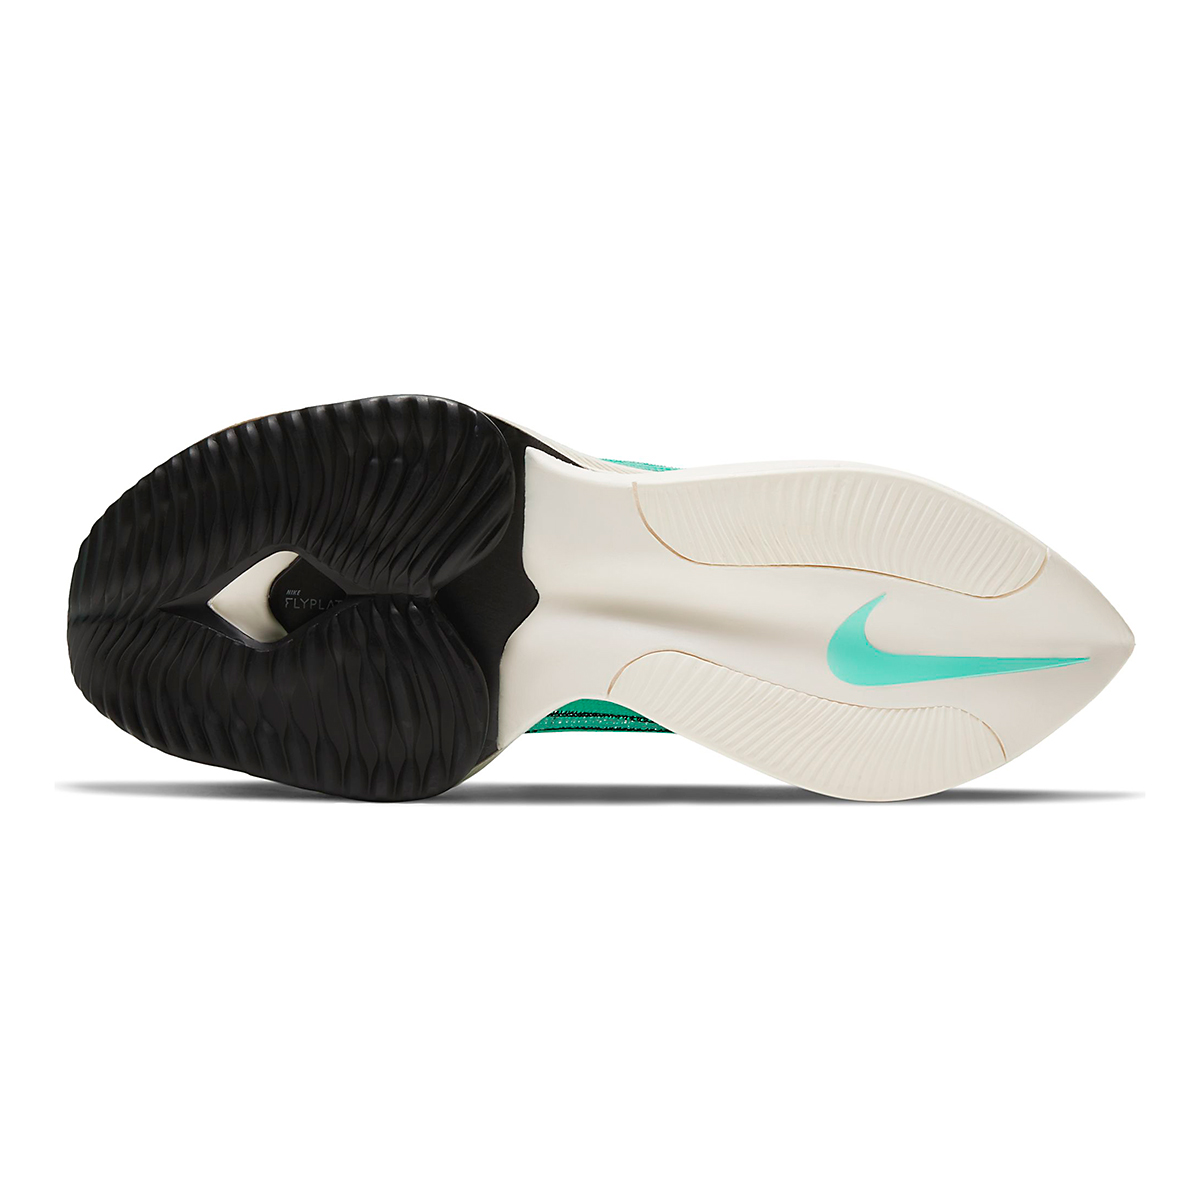 Men's Nike Air Zoom Alphafly Next% Running Shoe - Color: Hyper Turq/White-Black-Oracle Aqua - Size: 6 - Width: Regular, Hyper Turq/White-Black-Oracle Aqua, large, image 4